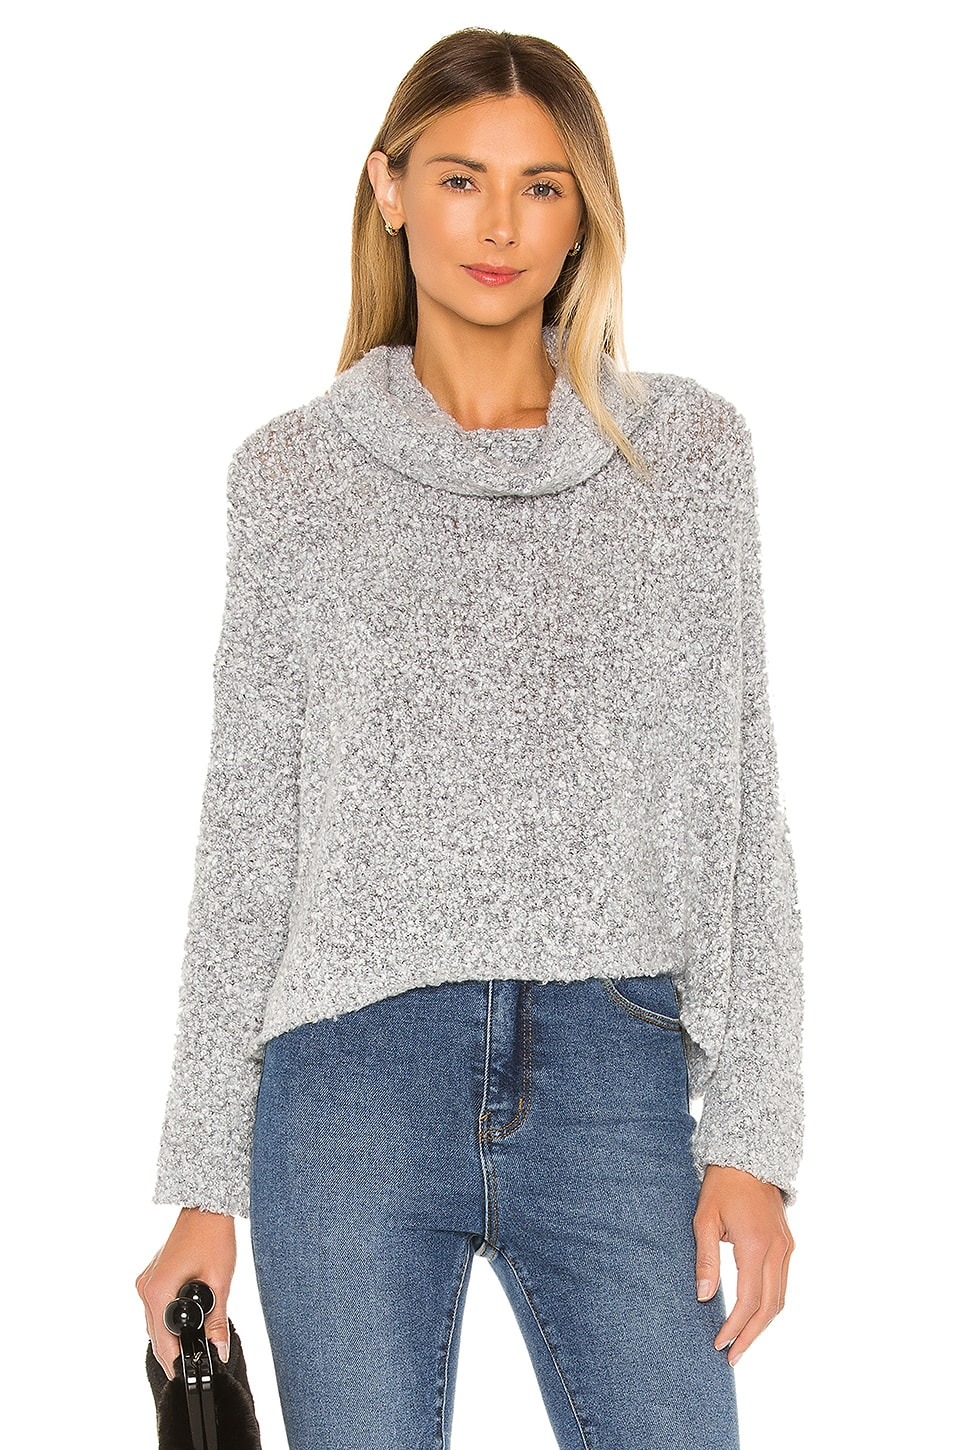 Free People Bff Sweater in Grey